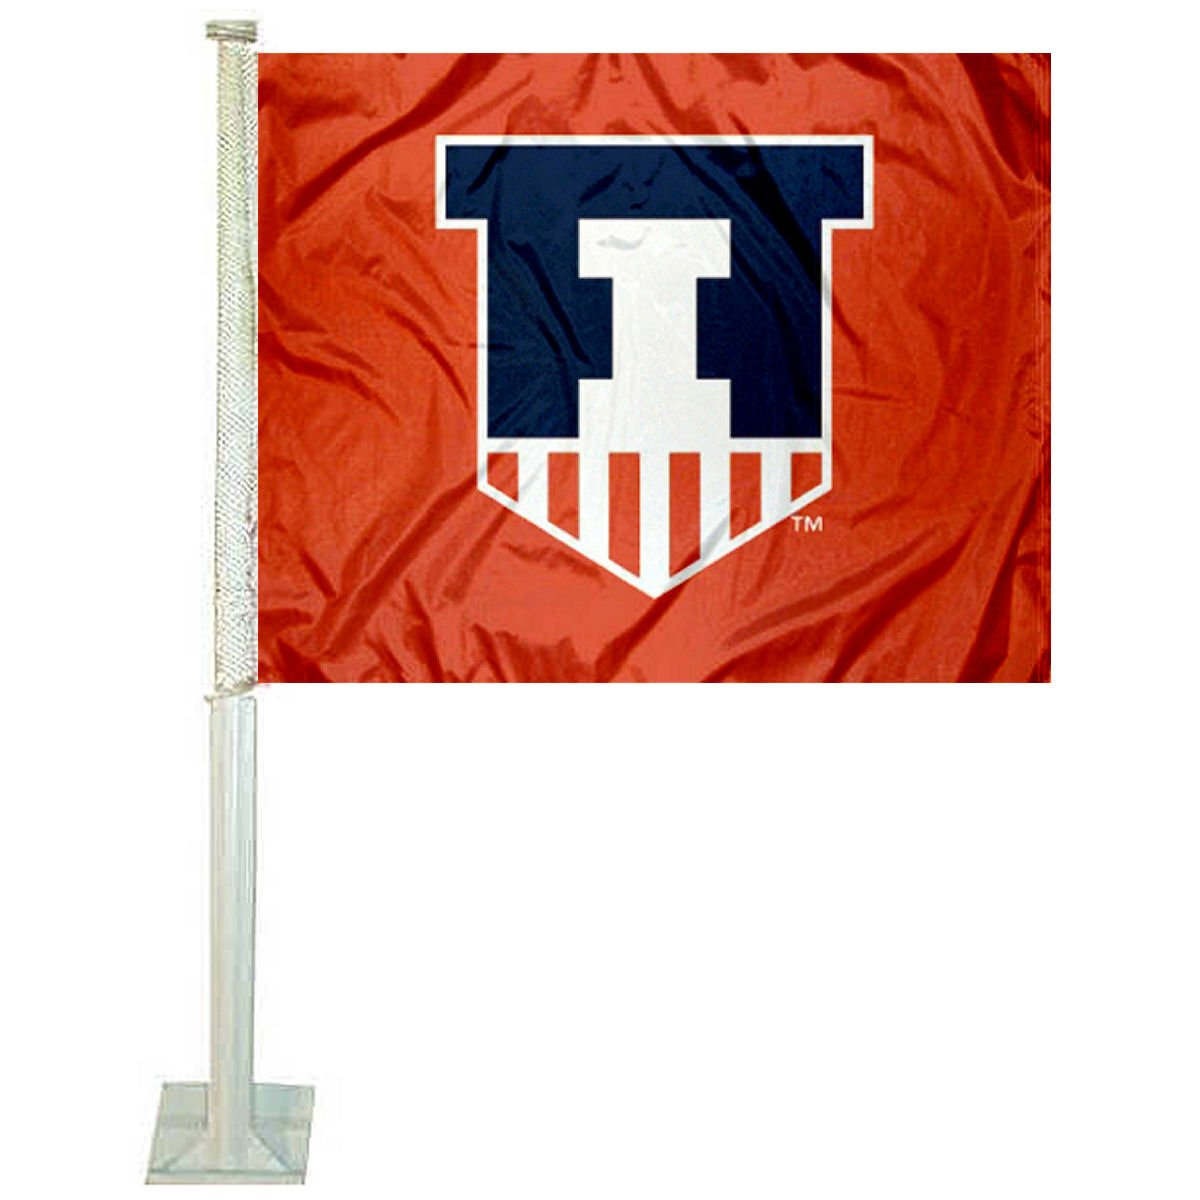 College Flags and Banners Co. Illinois Fighting Illini Car Flag